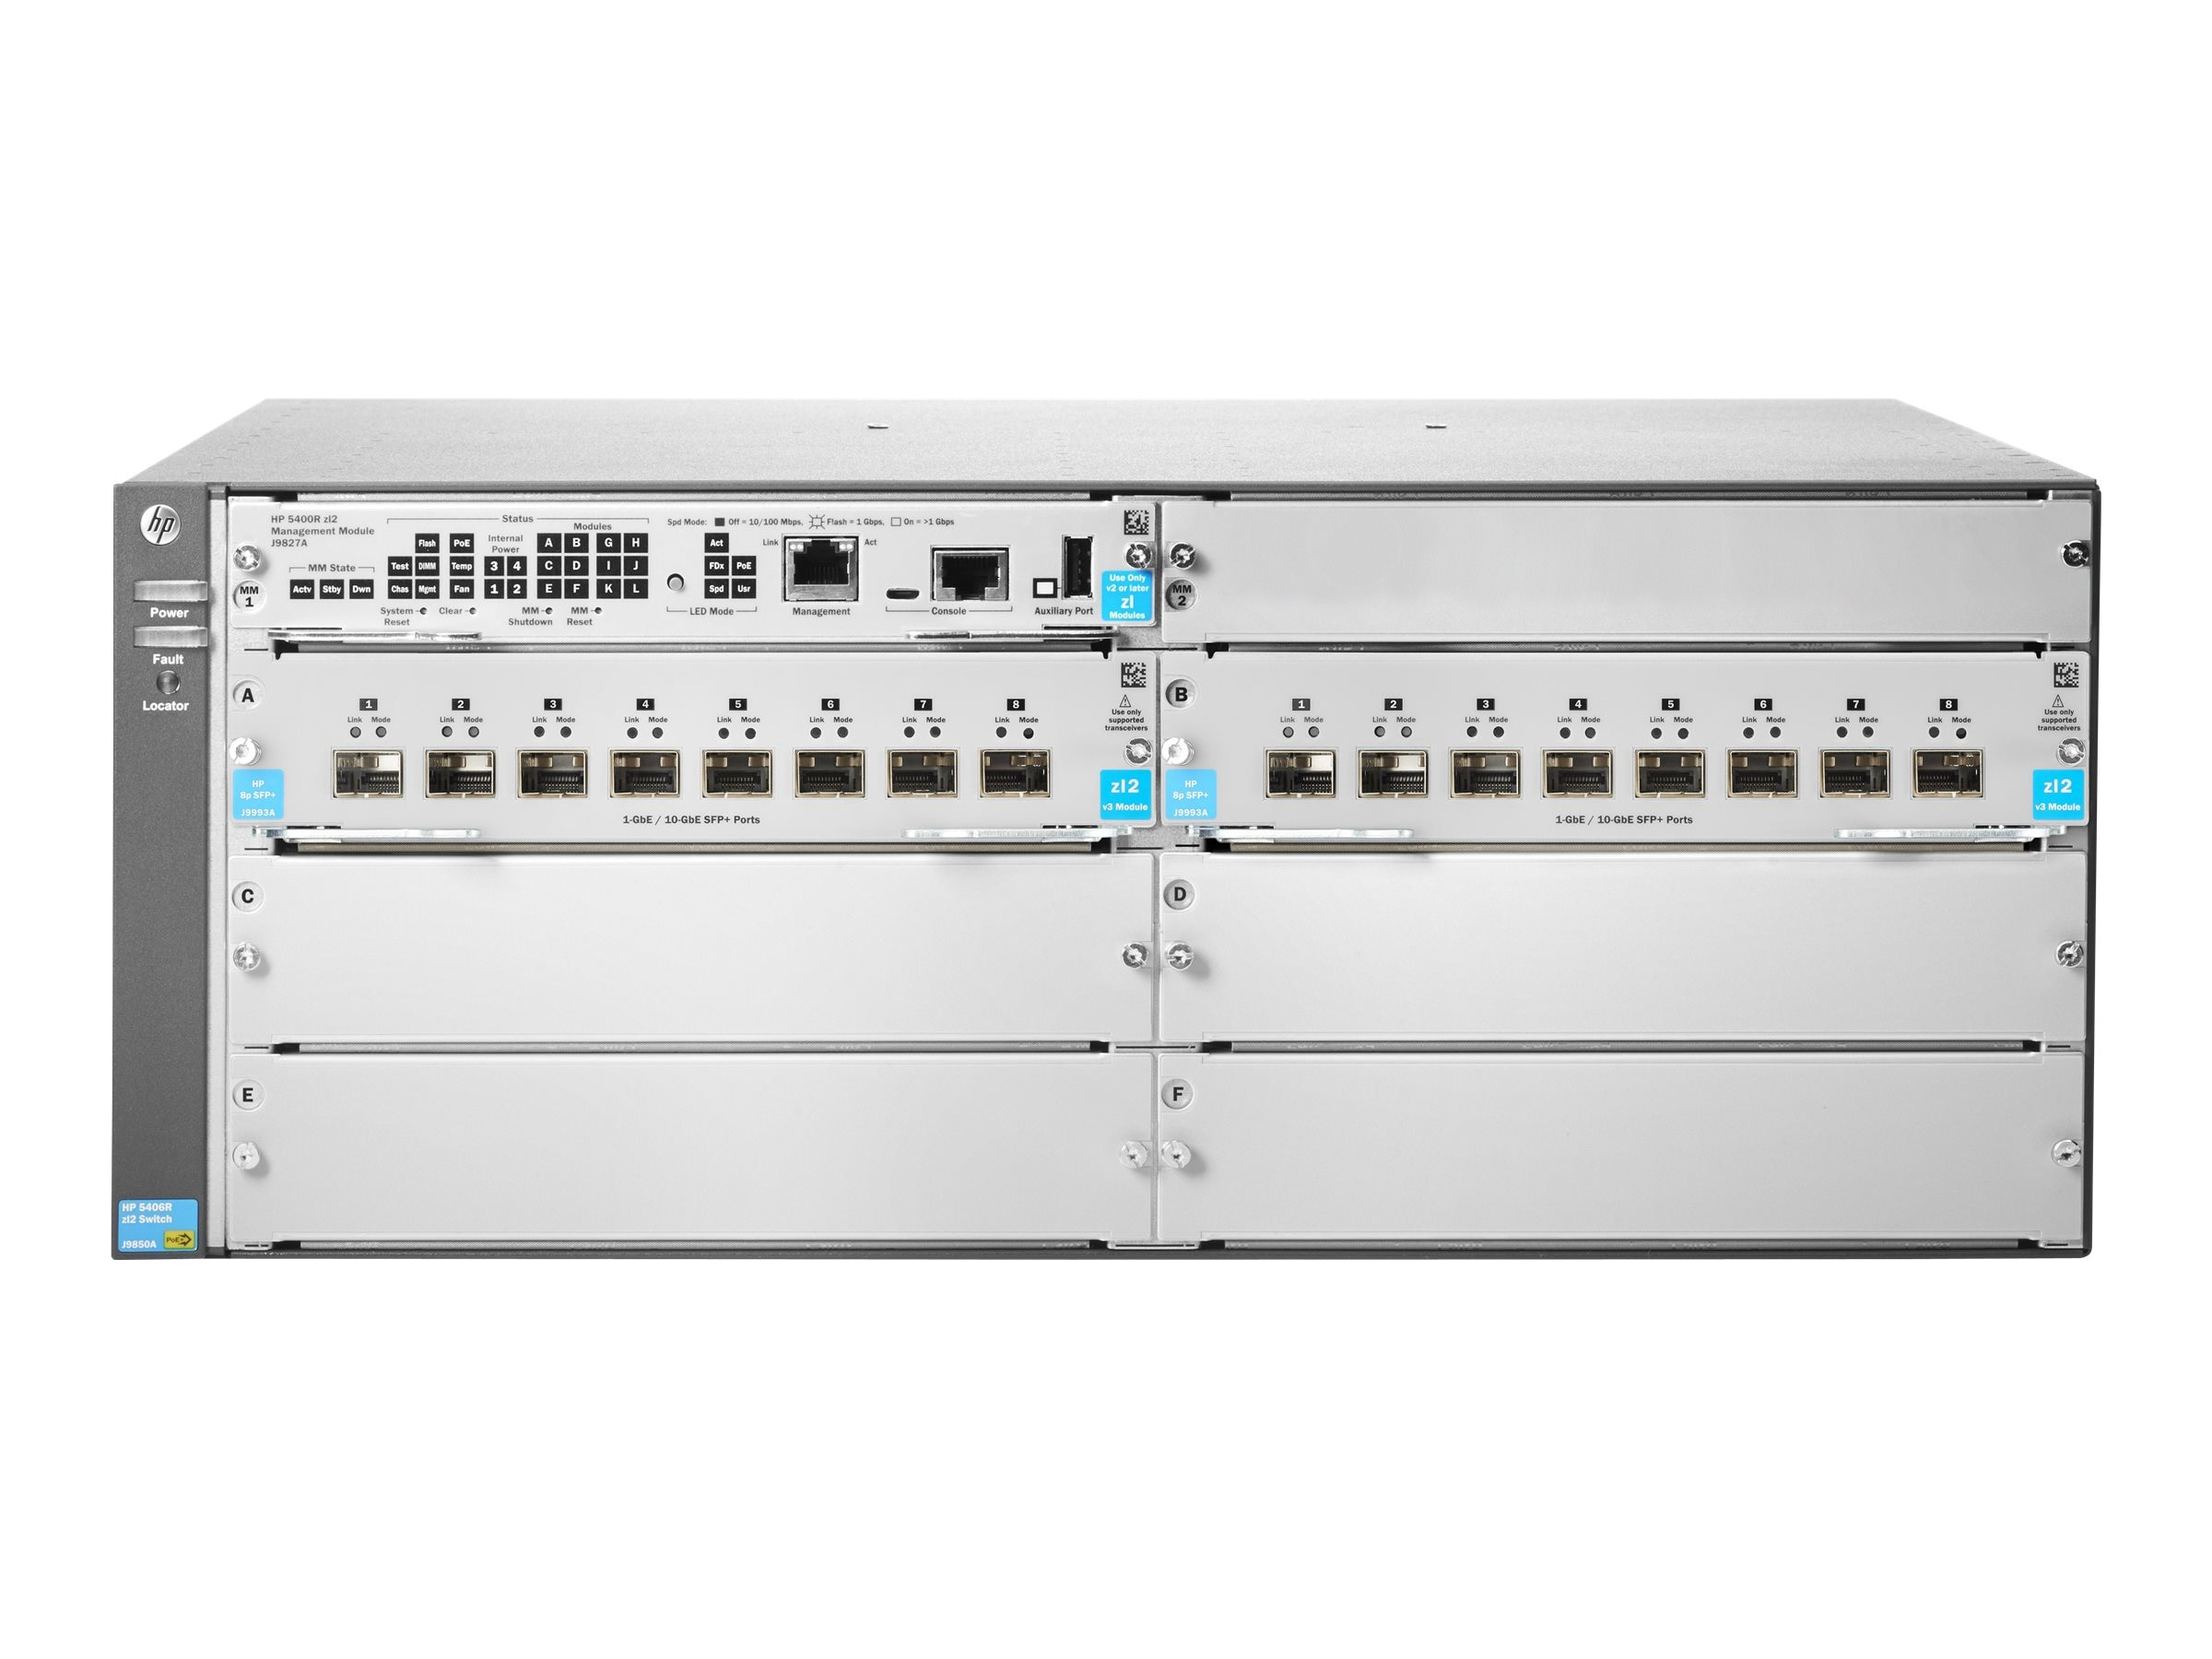 HPE 5406R 16-Port SFP+ v3 zl2 Switch (No PSU)